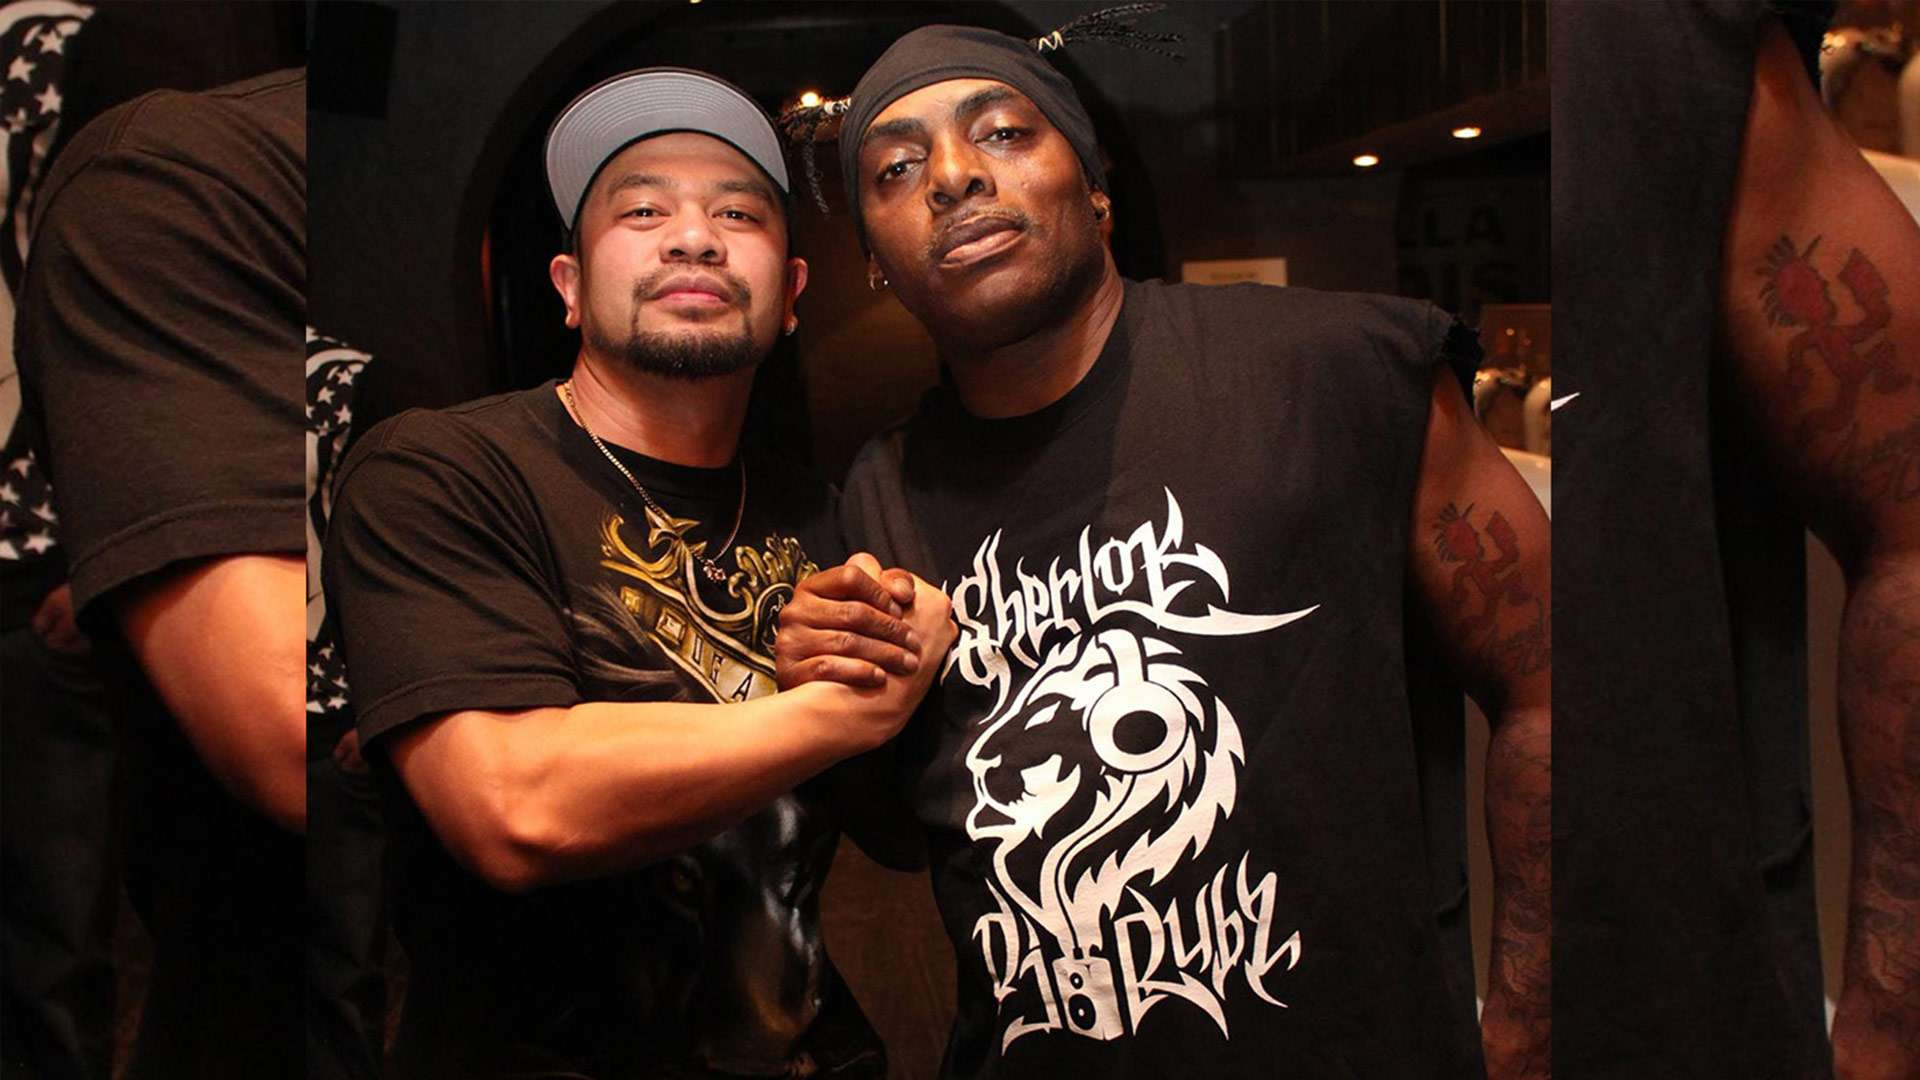 The One & Only Coolio spotted sporting our work done by the Aussie Hip Hop Legends: Sherlock & Dj Rubz